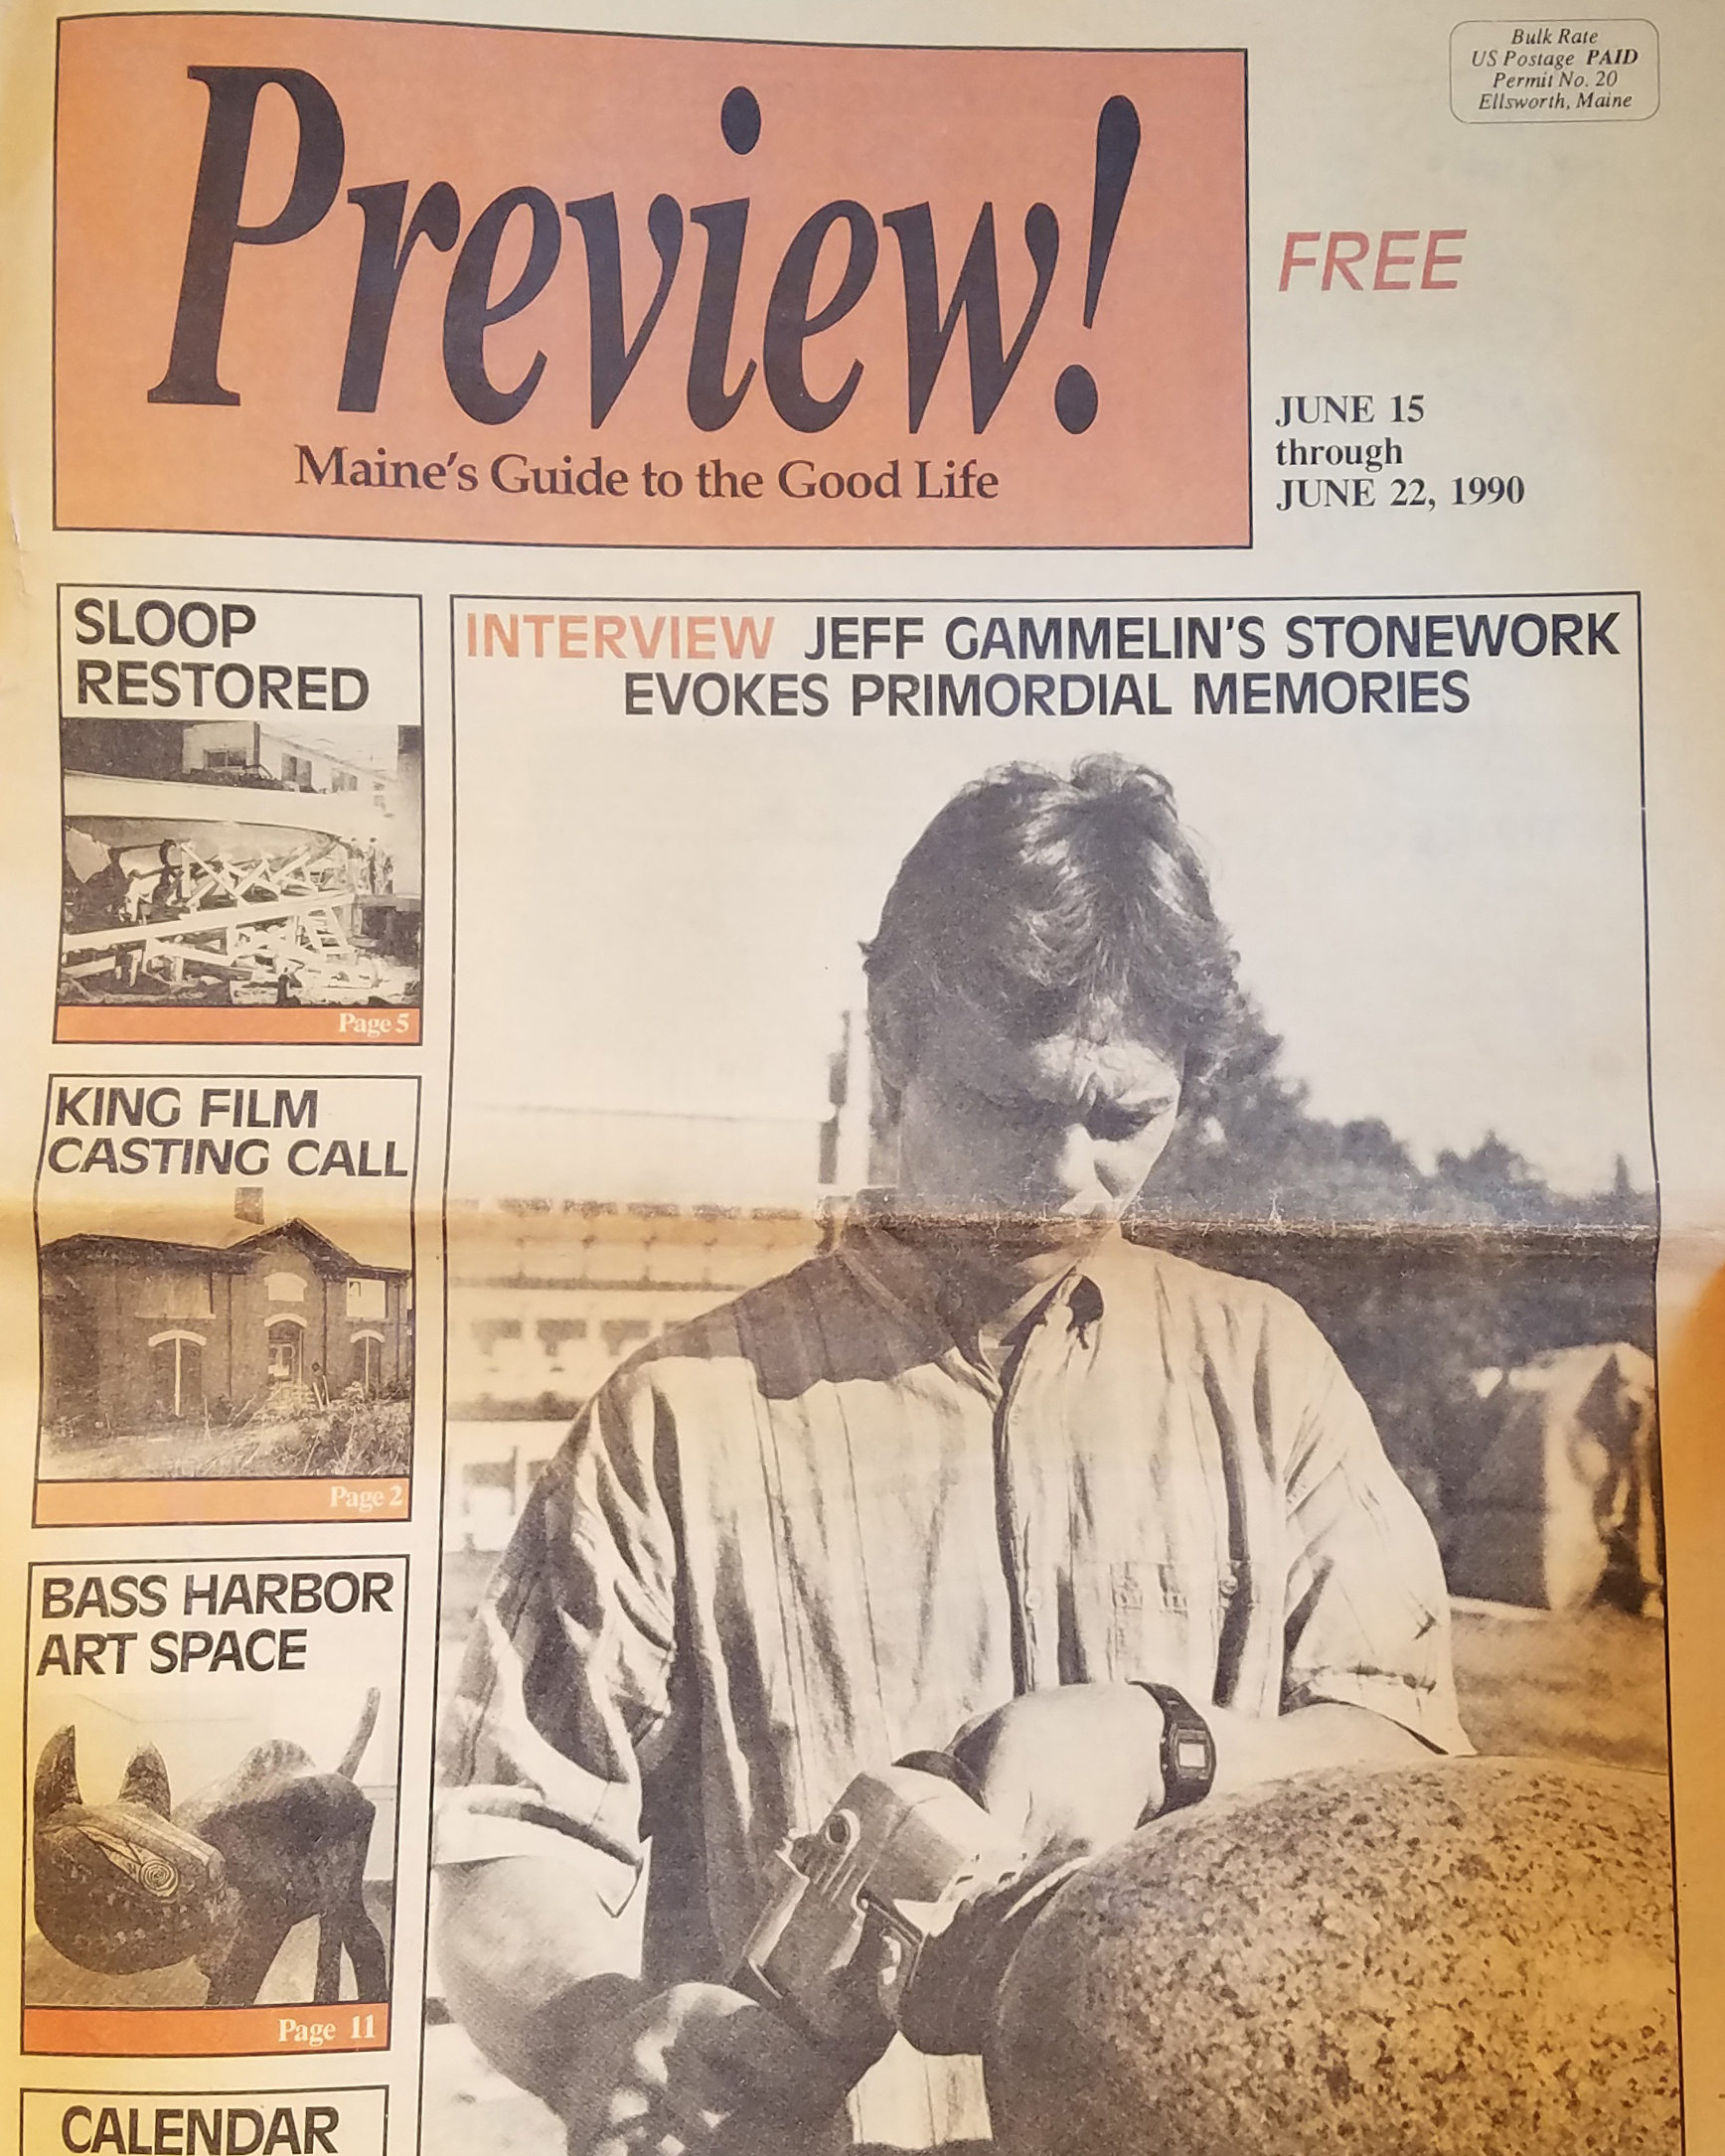 Preview!, June 1990